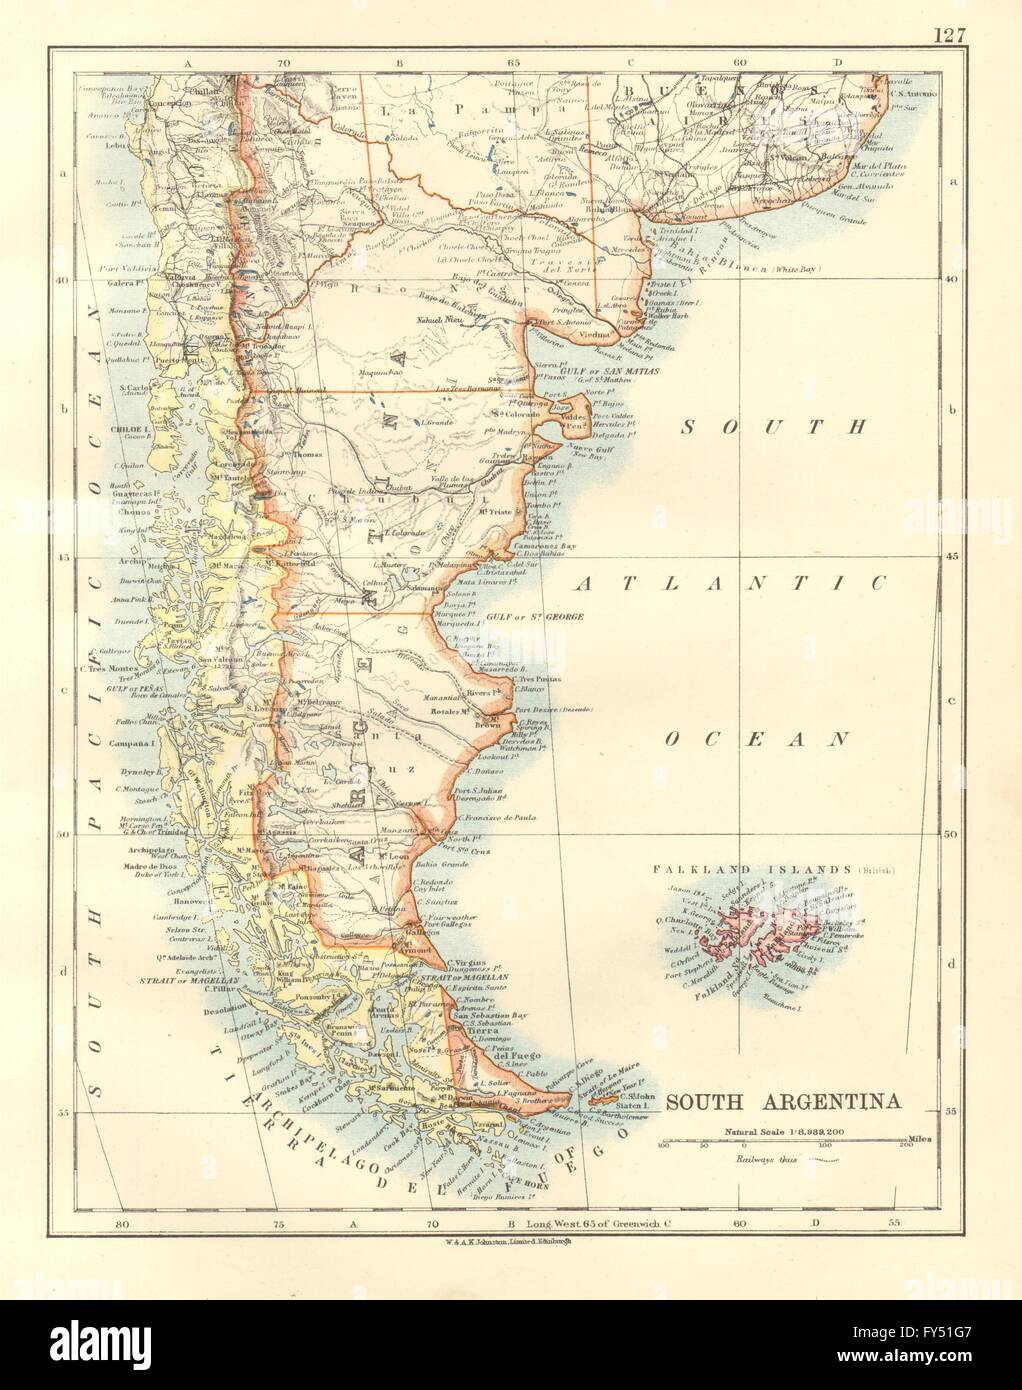 Patagonia southern argentina chile falkland islands johnston patagonia southern argentina chile falkland islands johnston 1920 map gumiabroncs Images